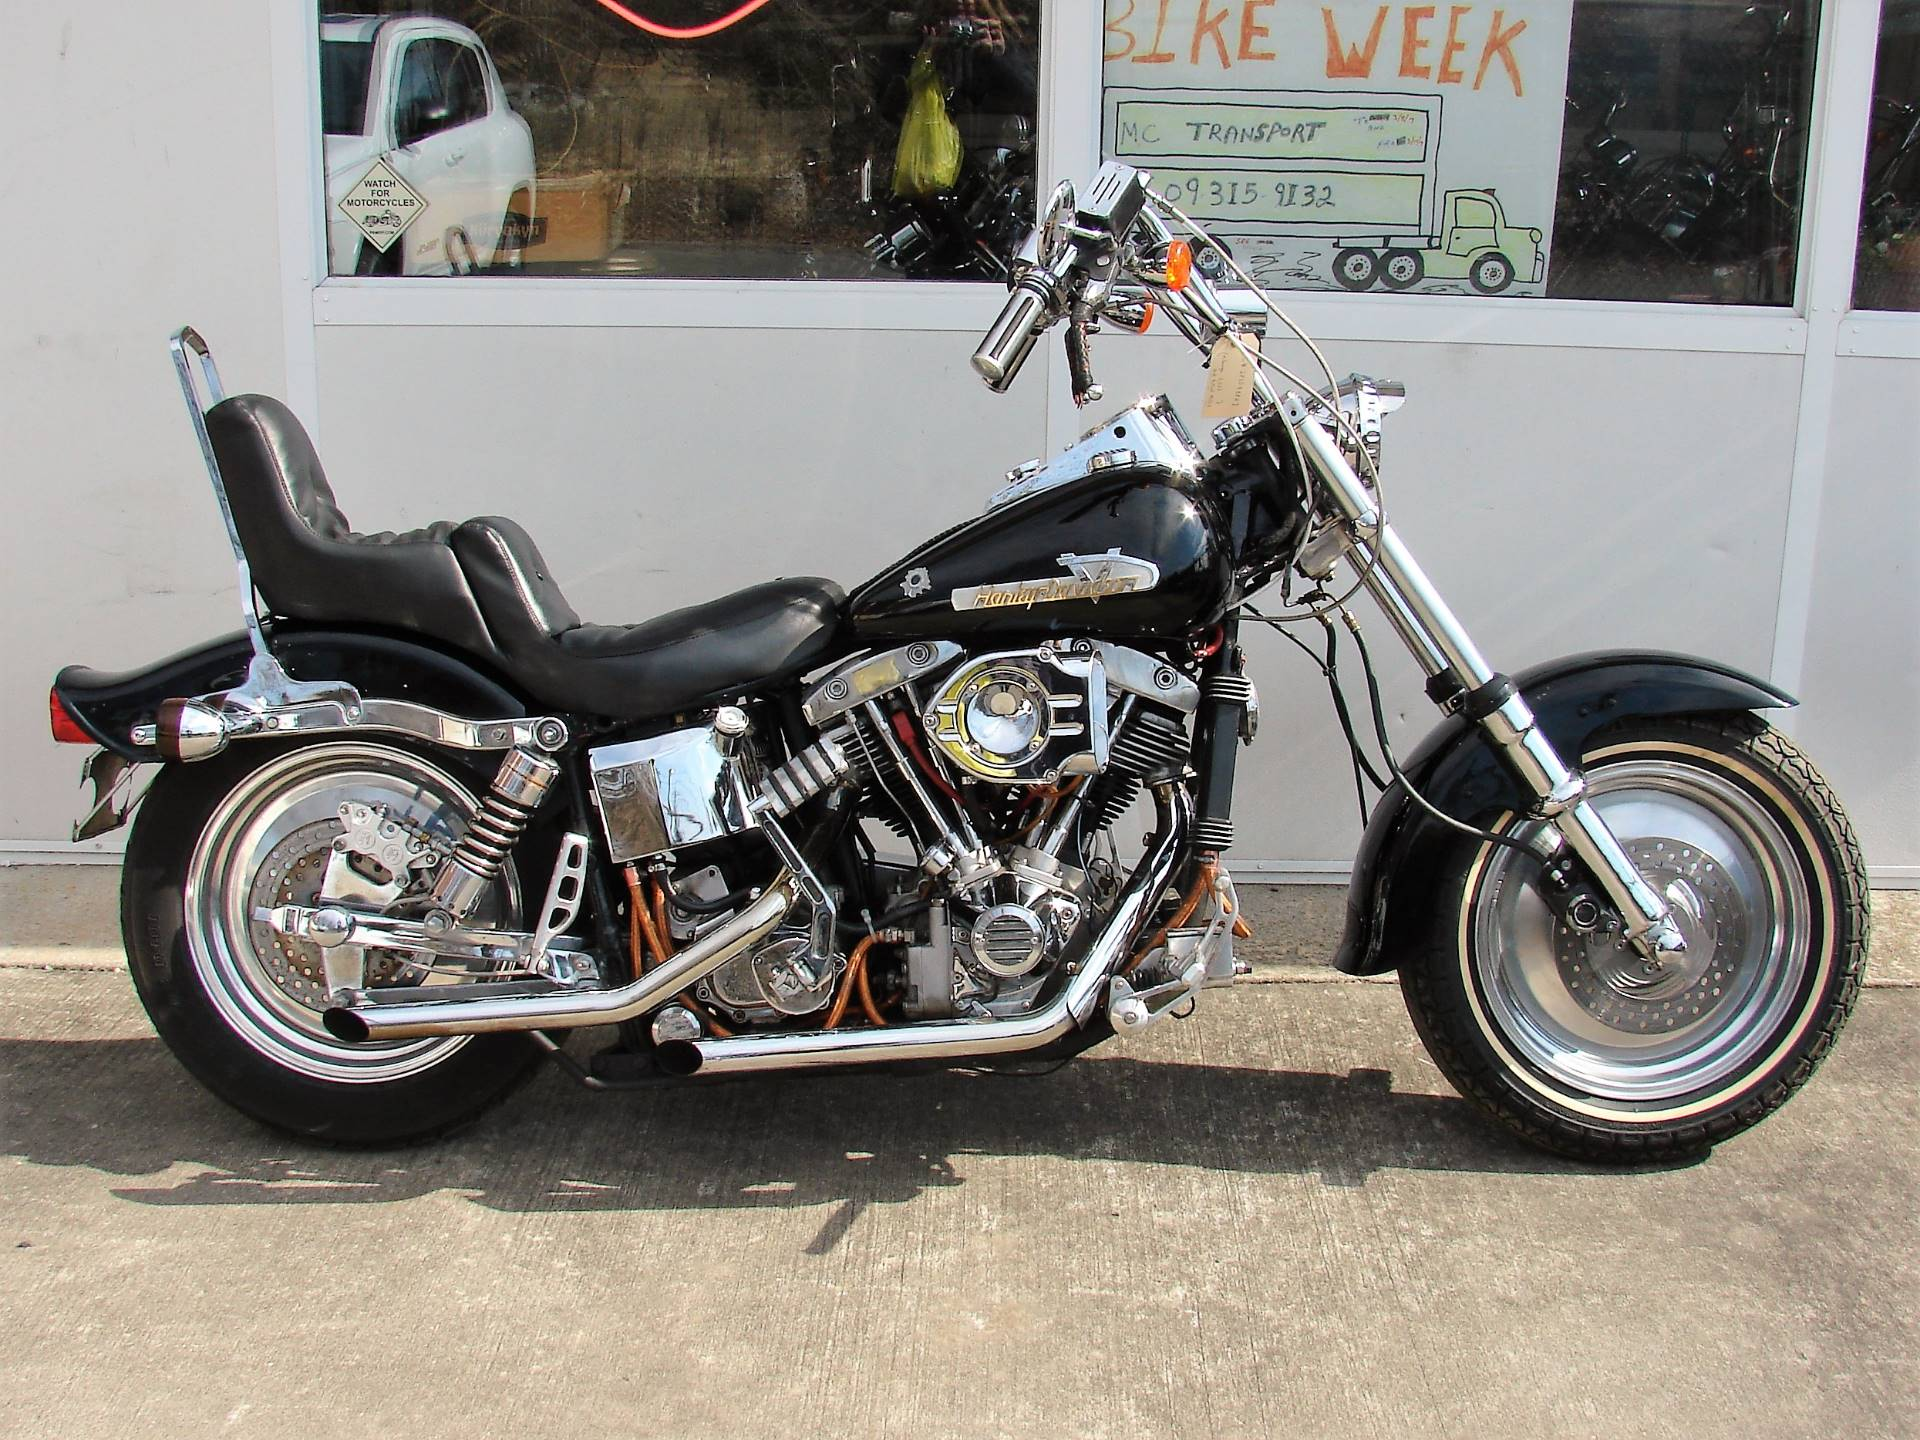 1977 Harley-Davidson Shovel Head  FXS-1200 in Williamstown, New Jersey - Photo 1